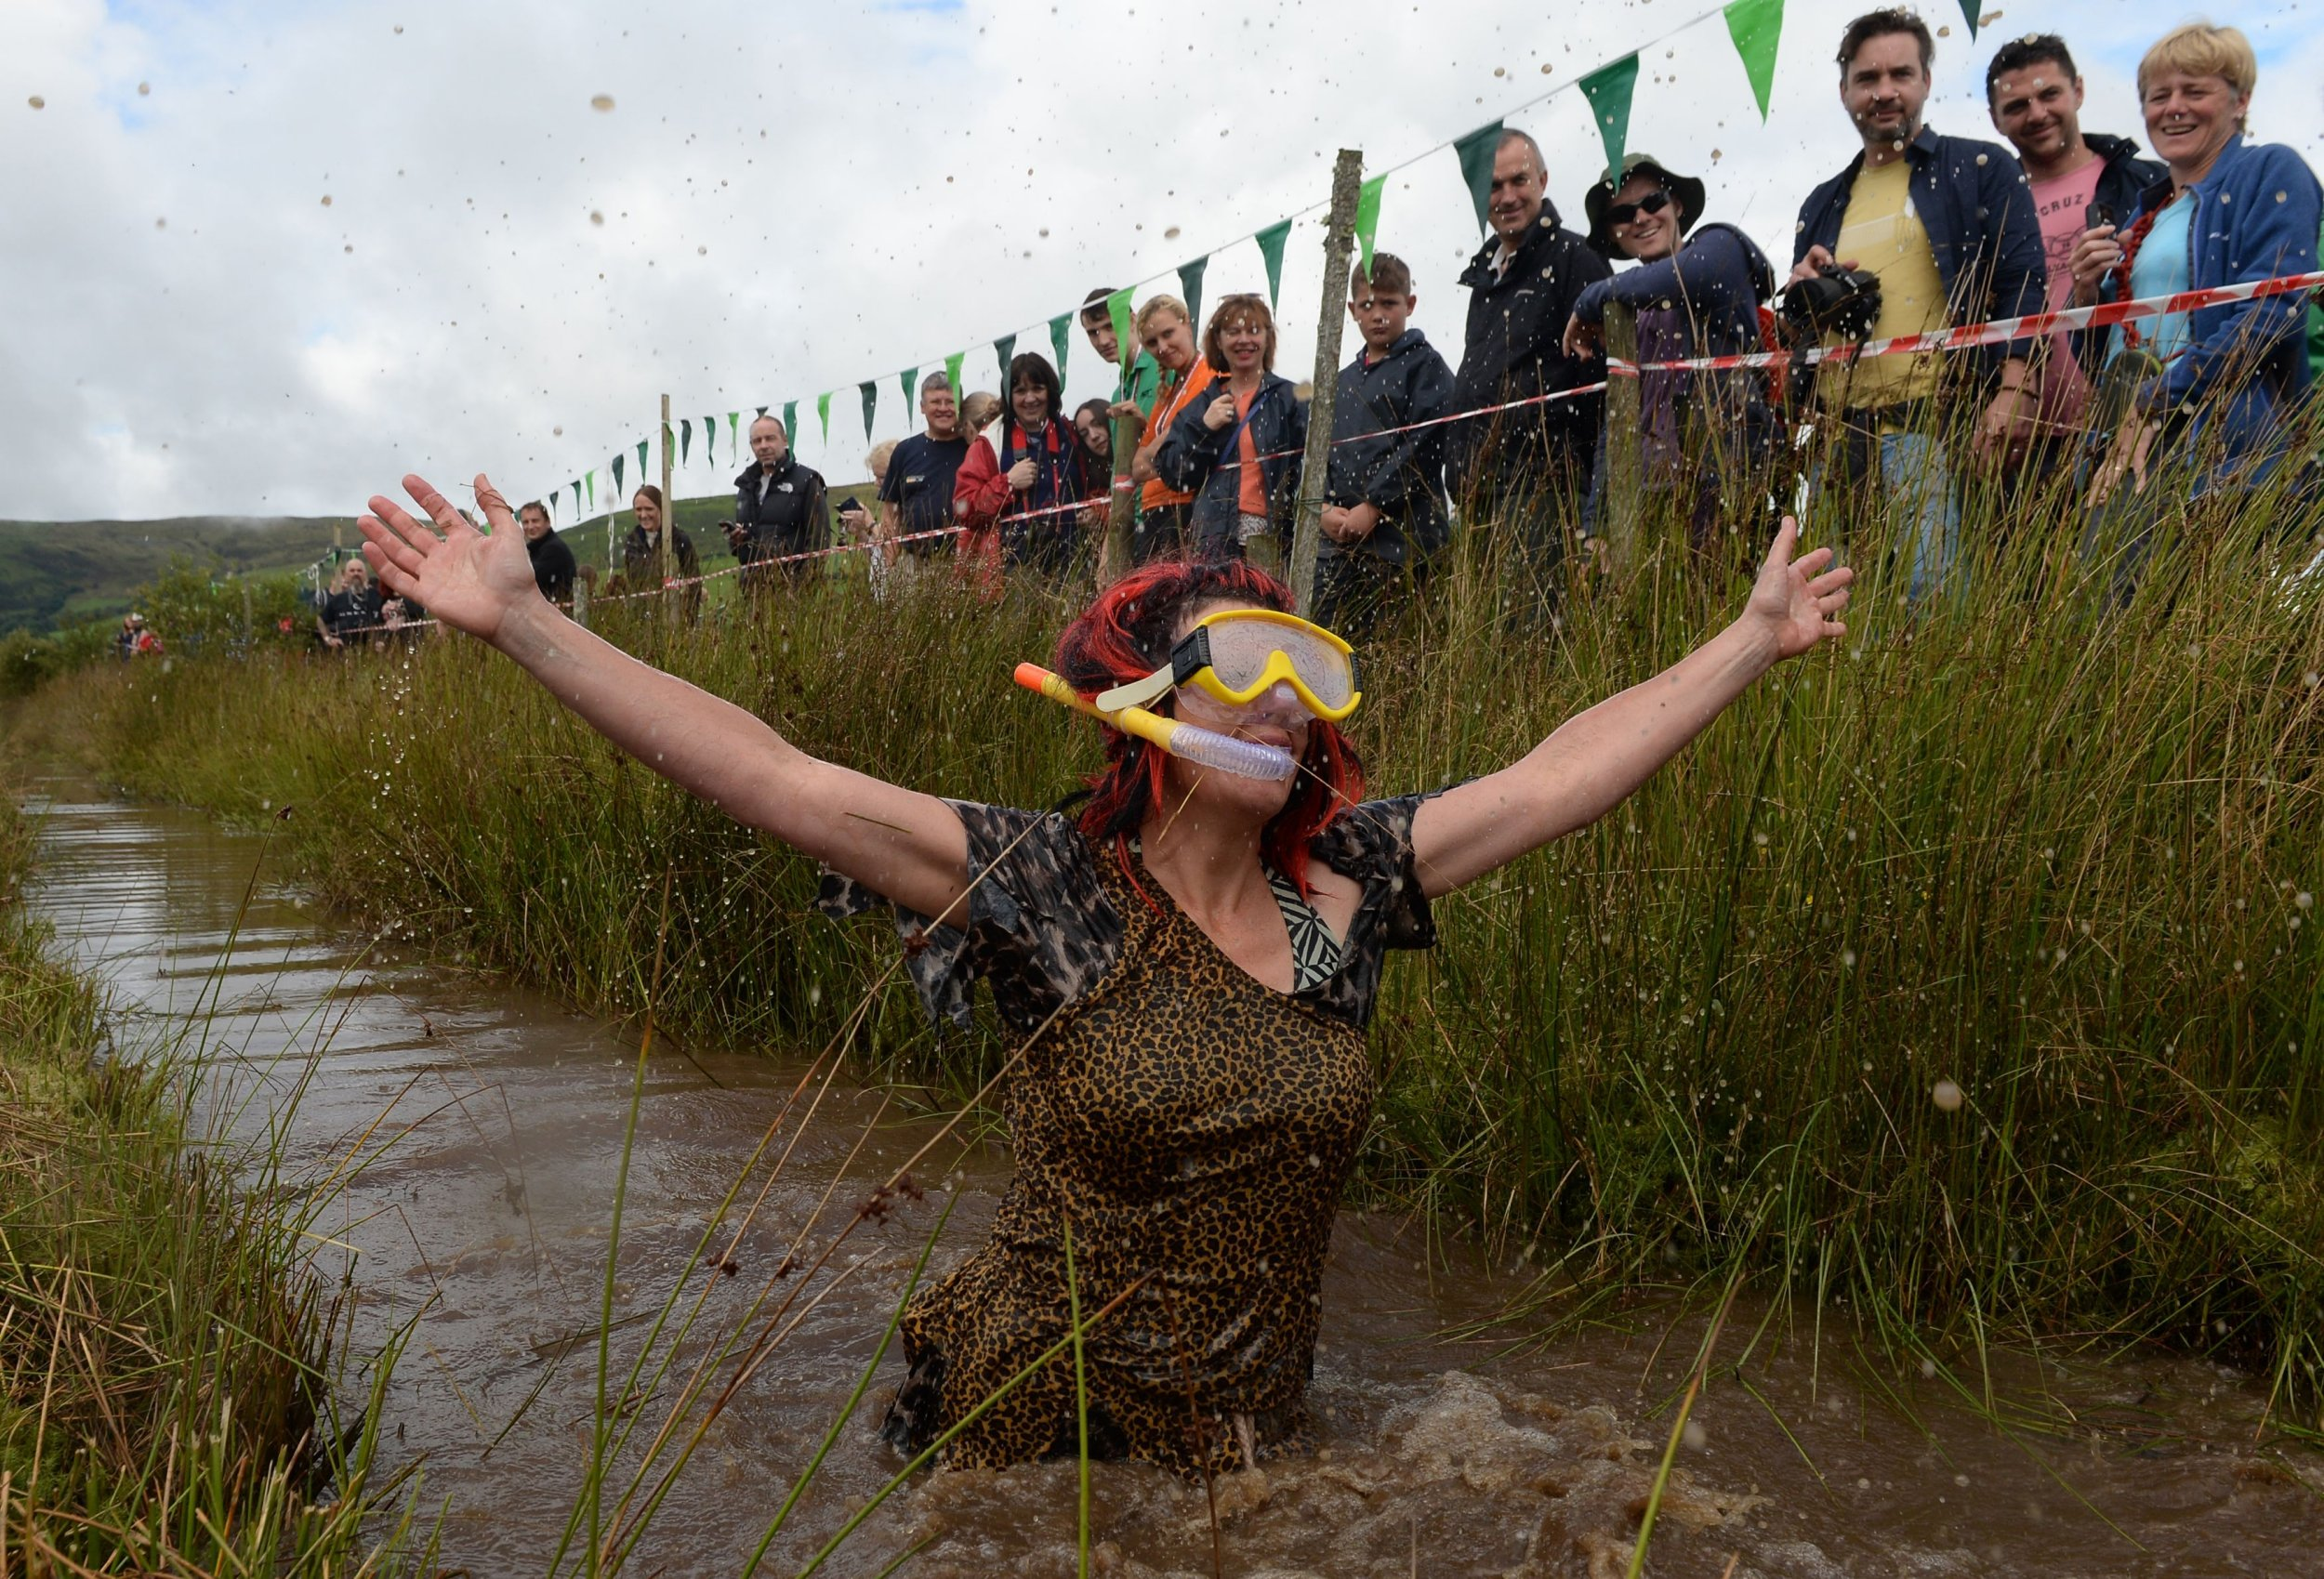 A competitor celebrates after taking part in the 31st World Bog Snorkelling Championships at Waen Rhydd peat bog in Llanwrtyd Wells, Wales. PRESS ASSOCIATION Photo. Picture date: Sunday August 28, 2016. Photo credit should read: Joe Giddens/PA Wire